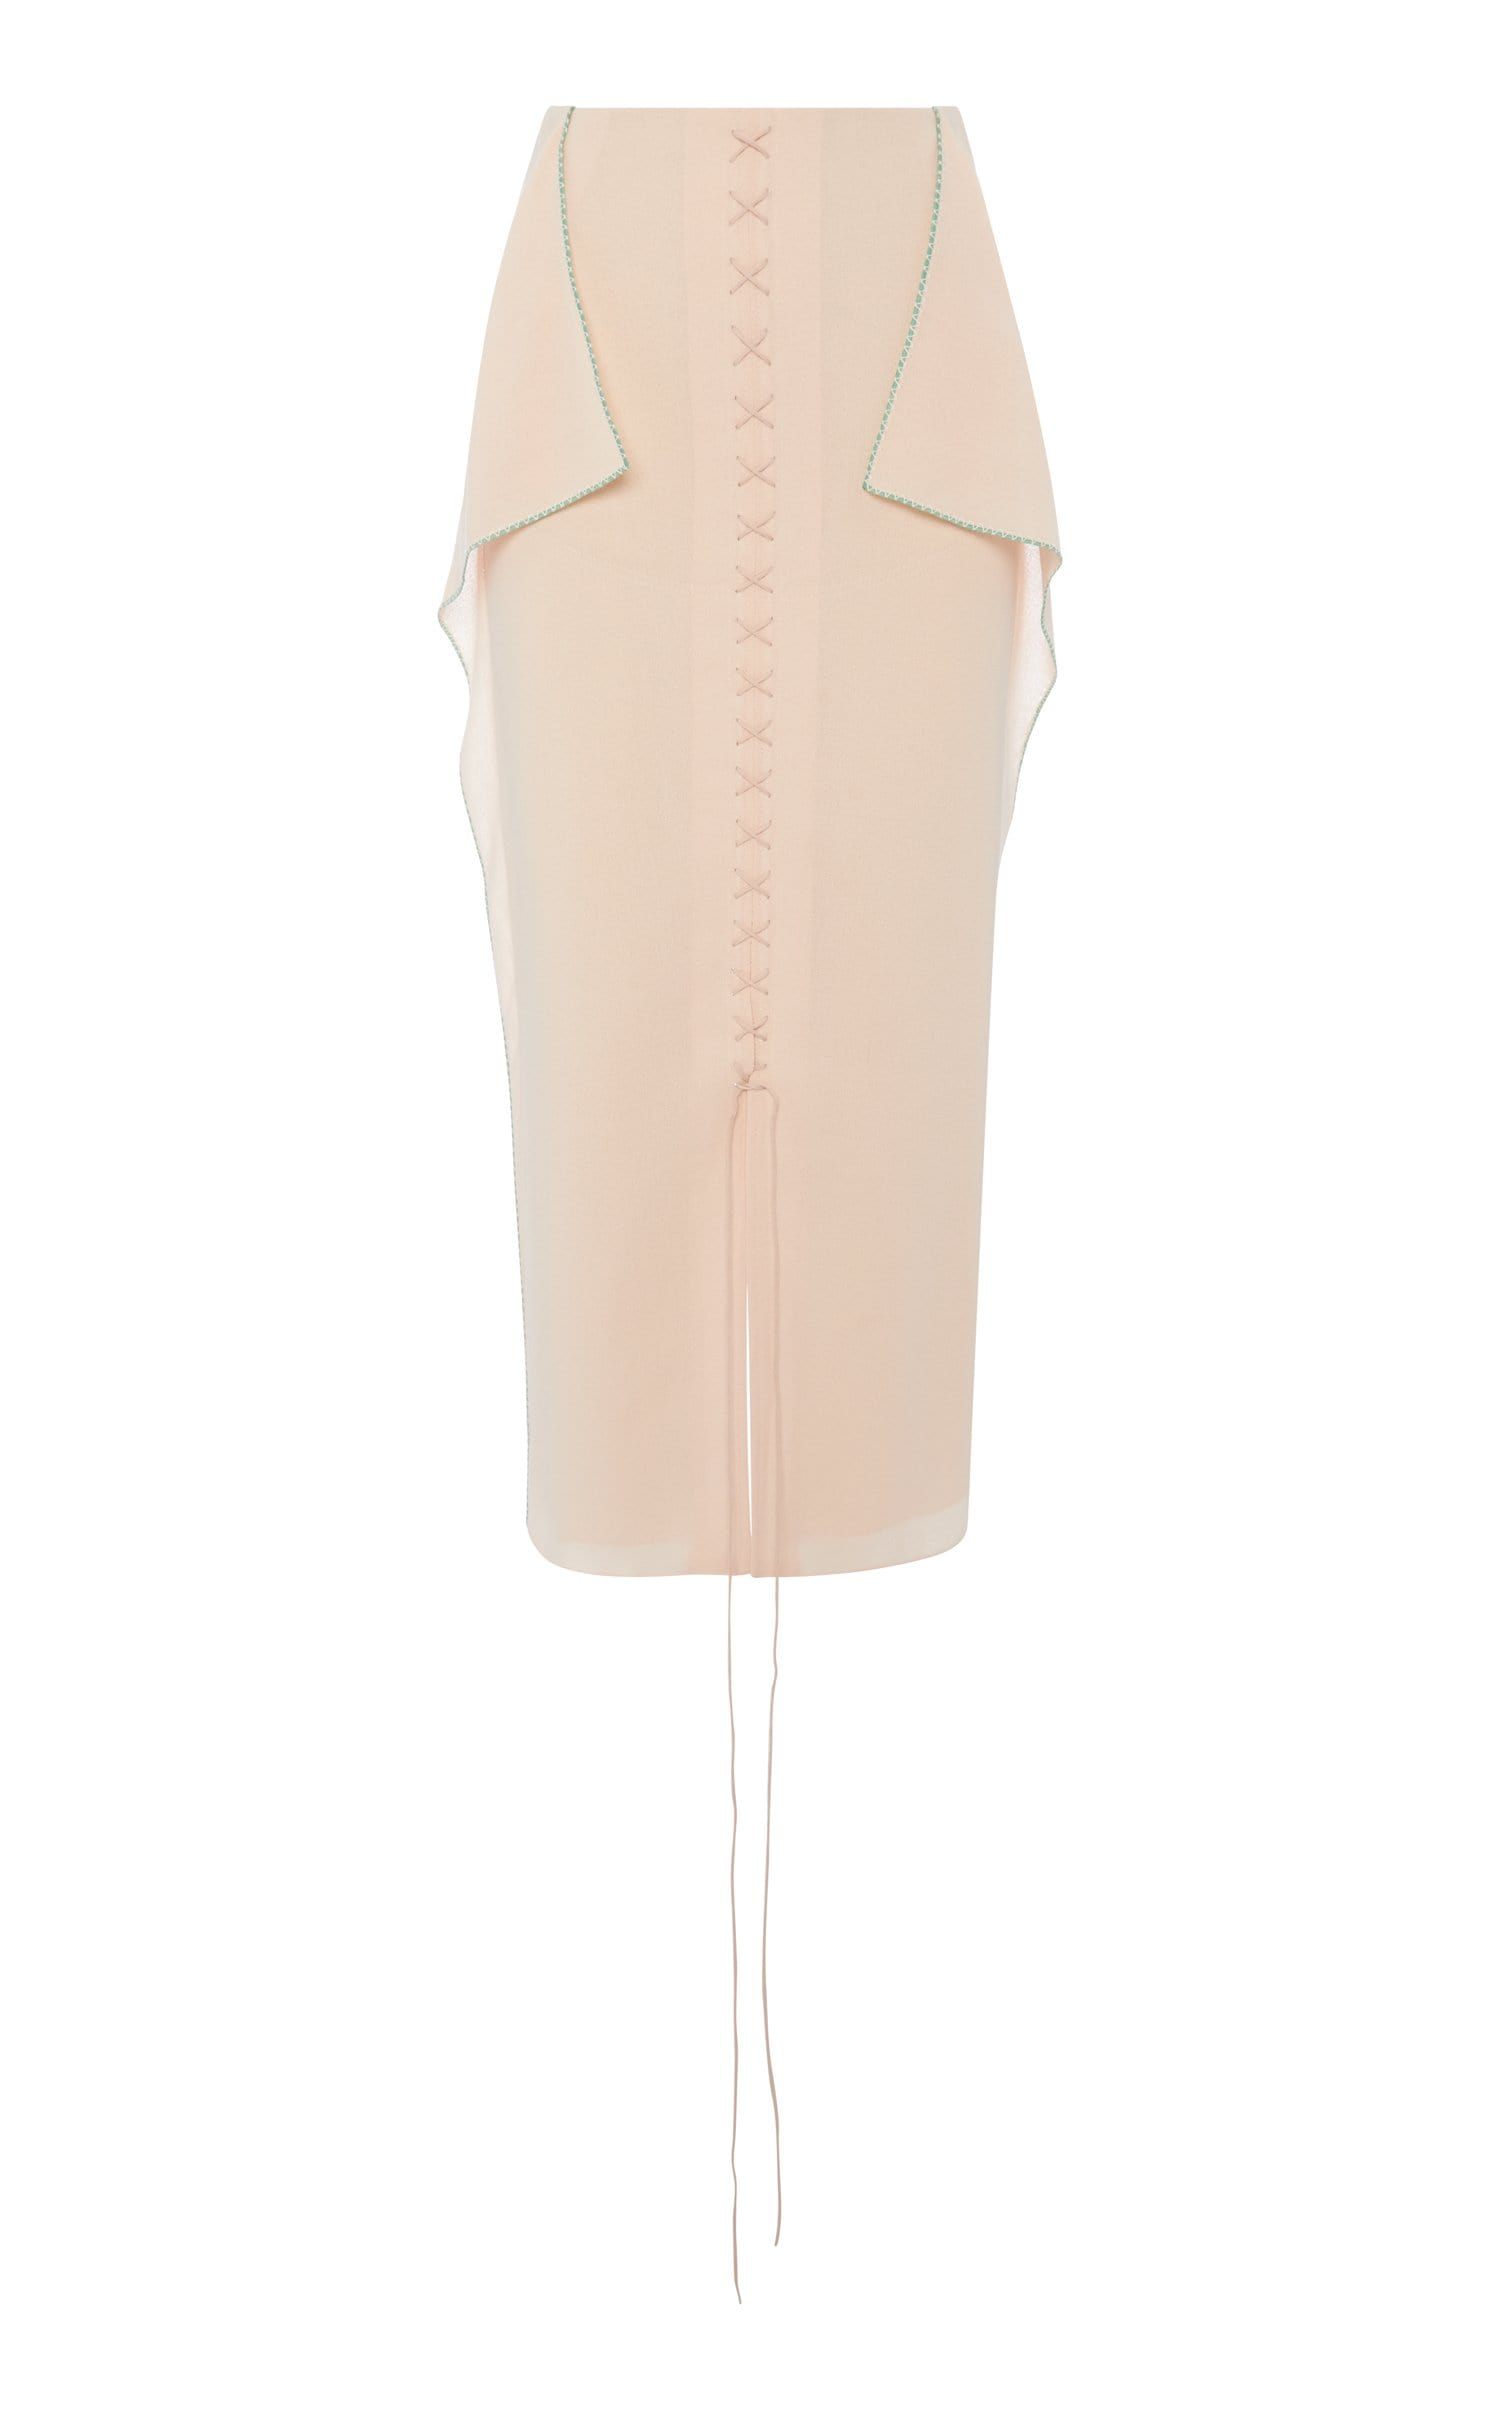 Halfin Skirt In Light Peach from Roland Mouret